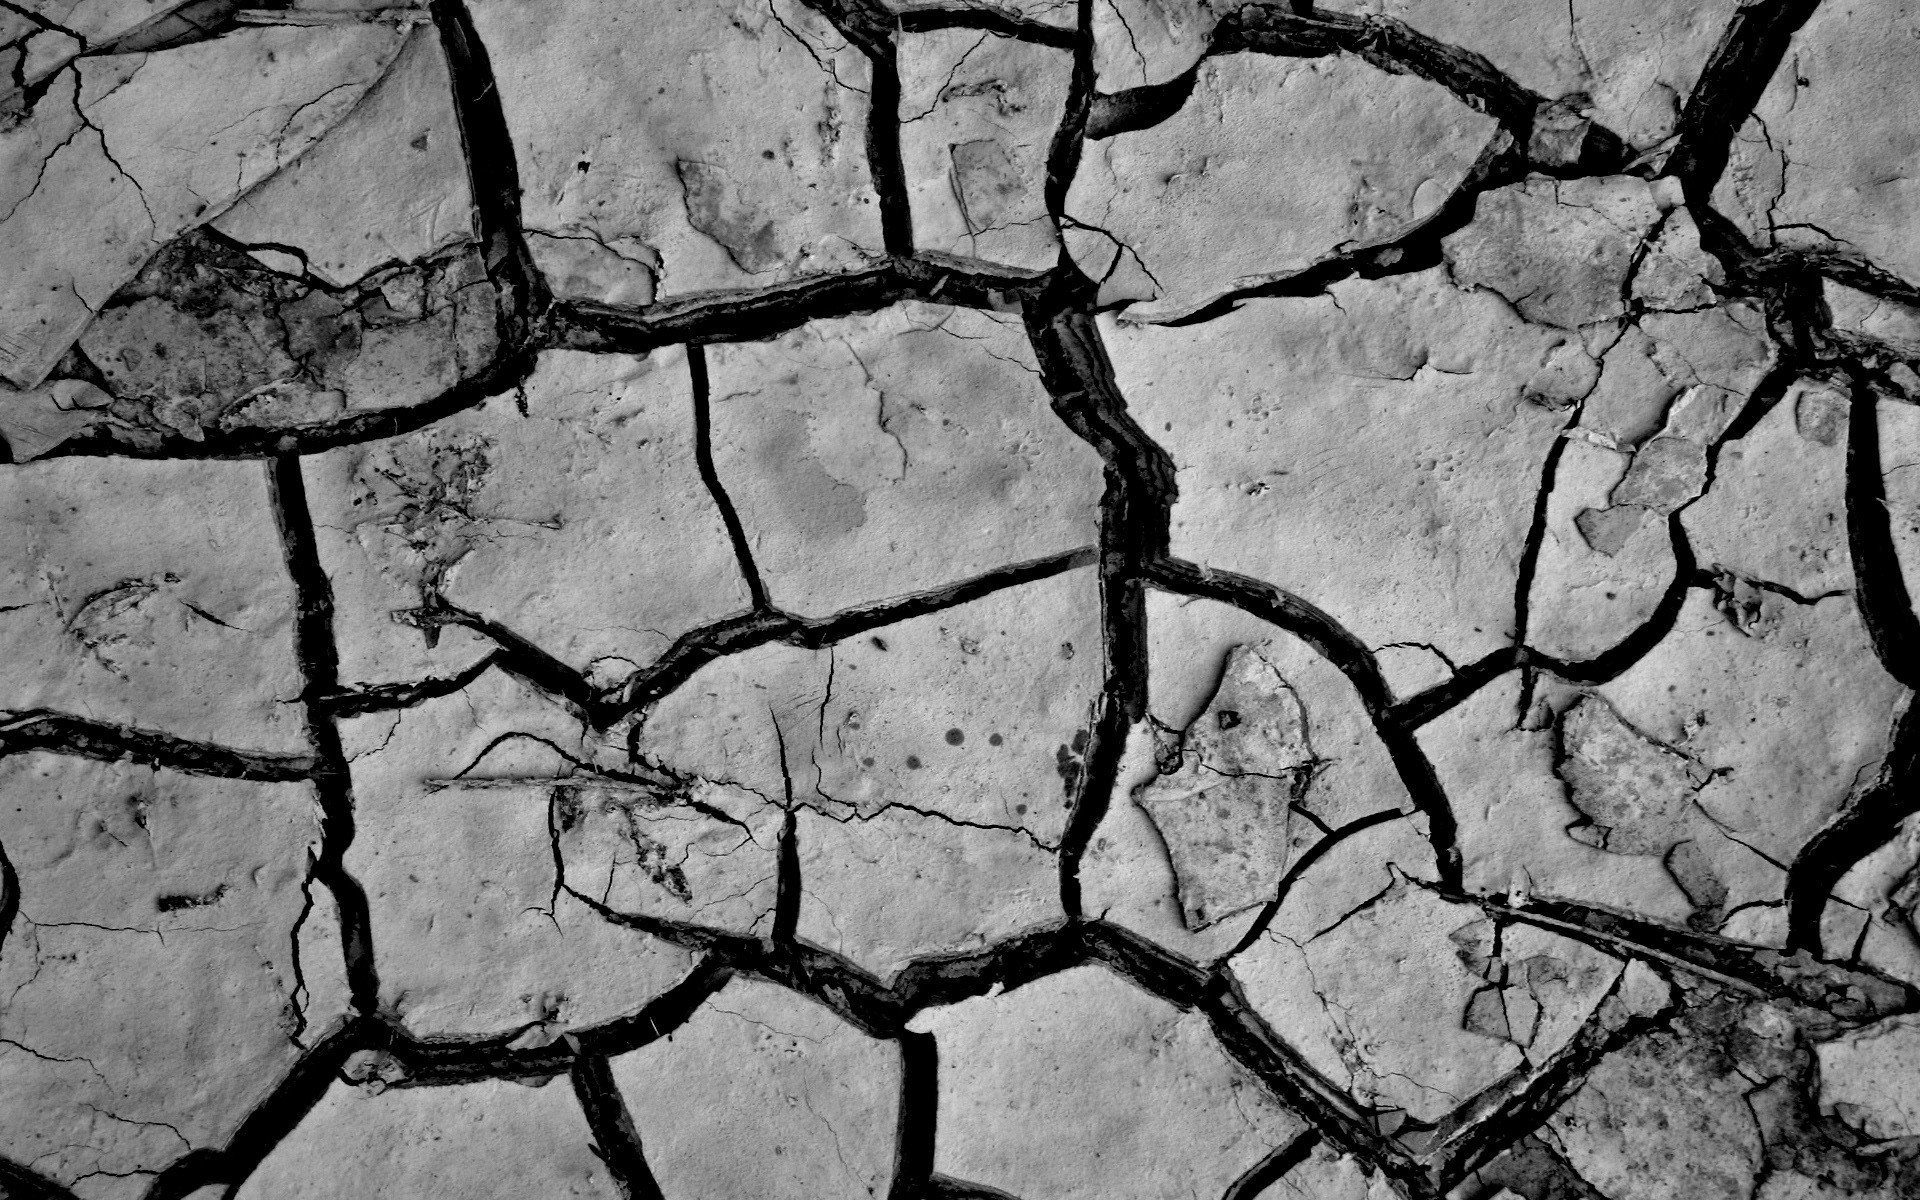 Cracked surface photo